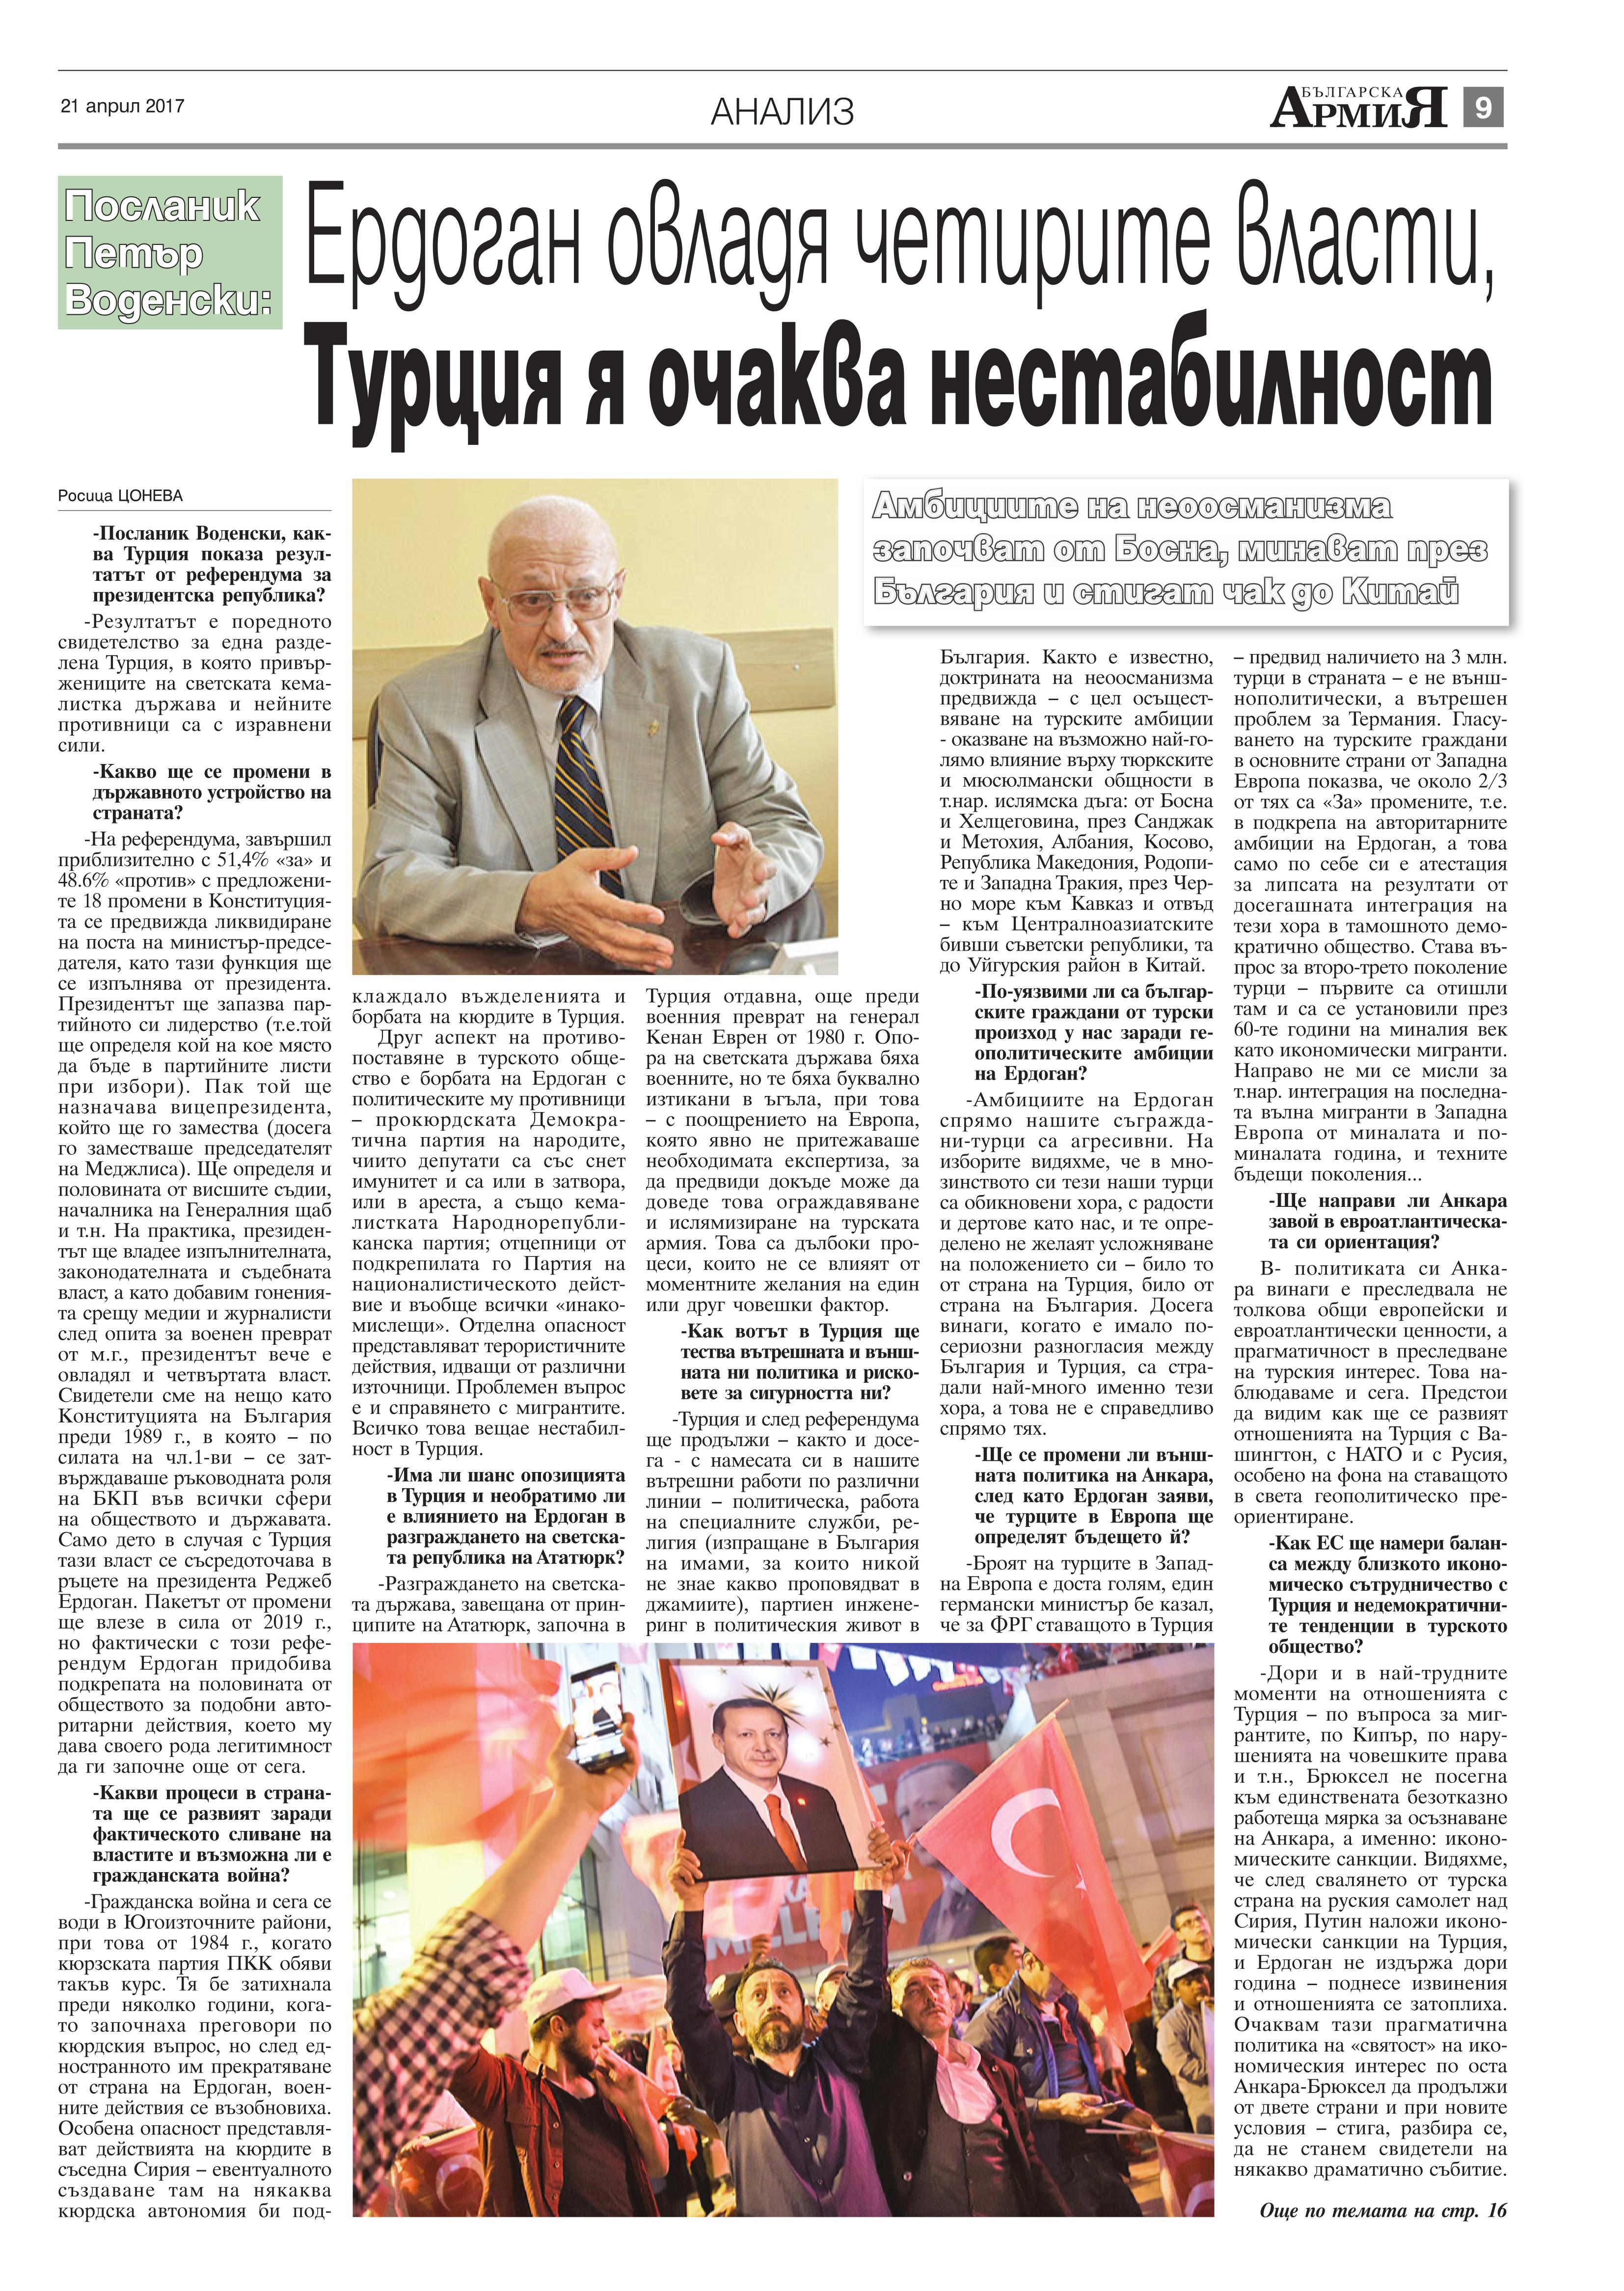 https://www.armymedia.bg/wp-content/uploads/2015/06/09.page1_-19.jpg